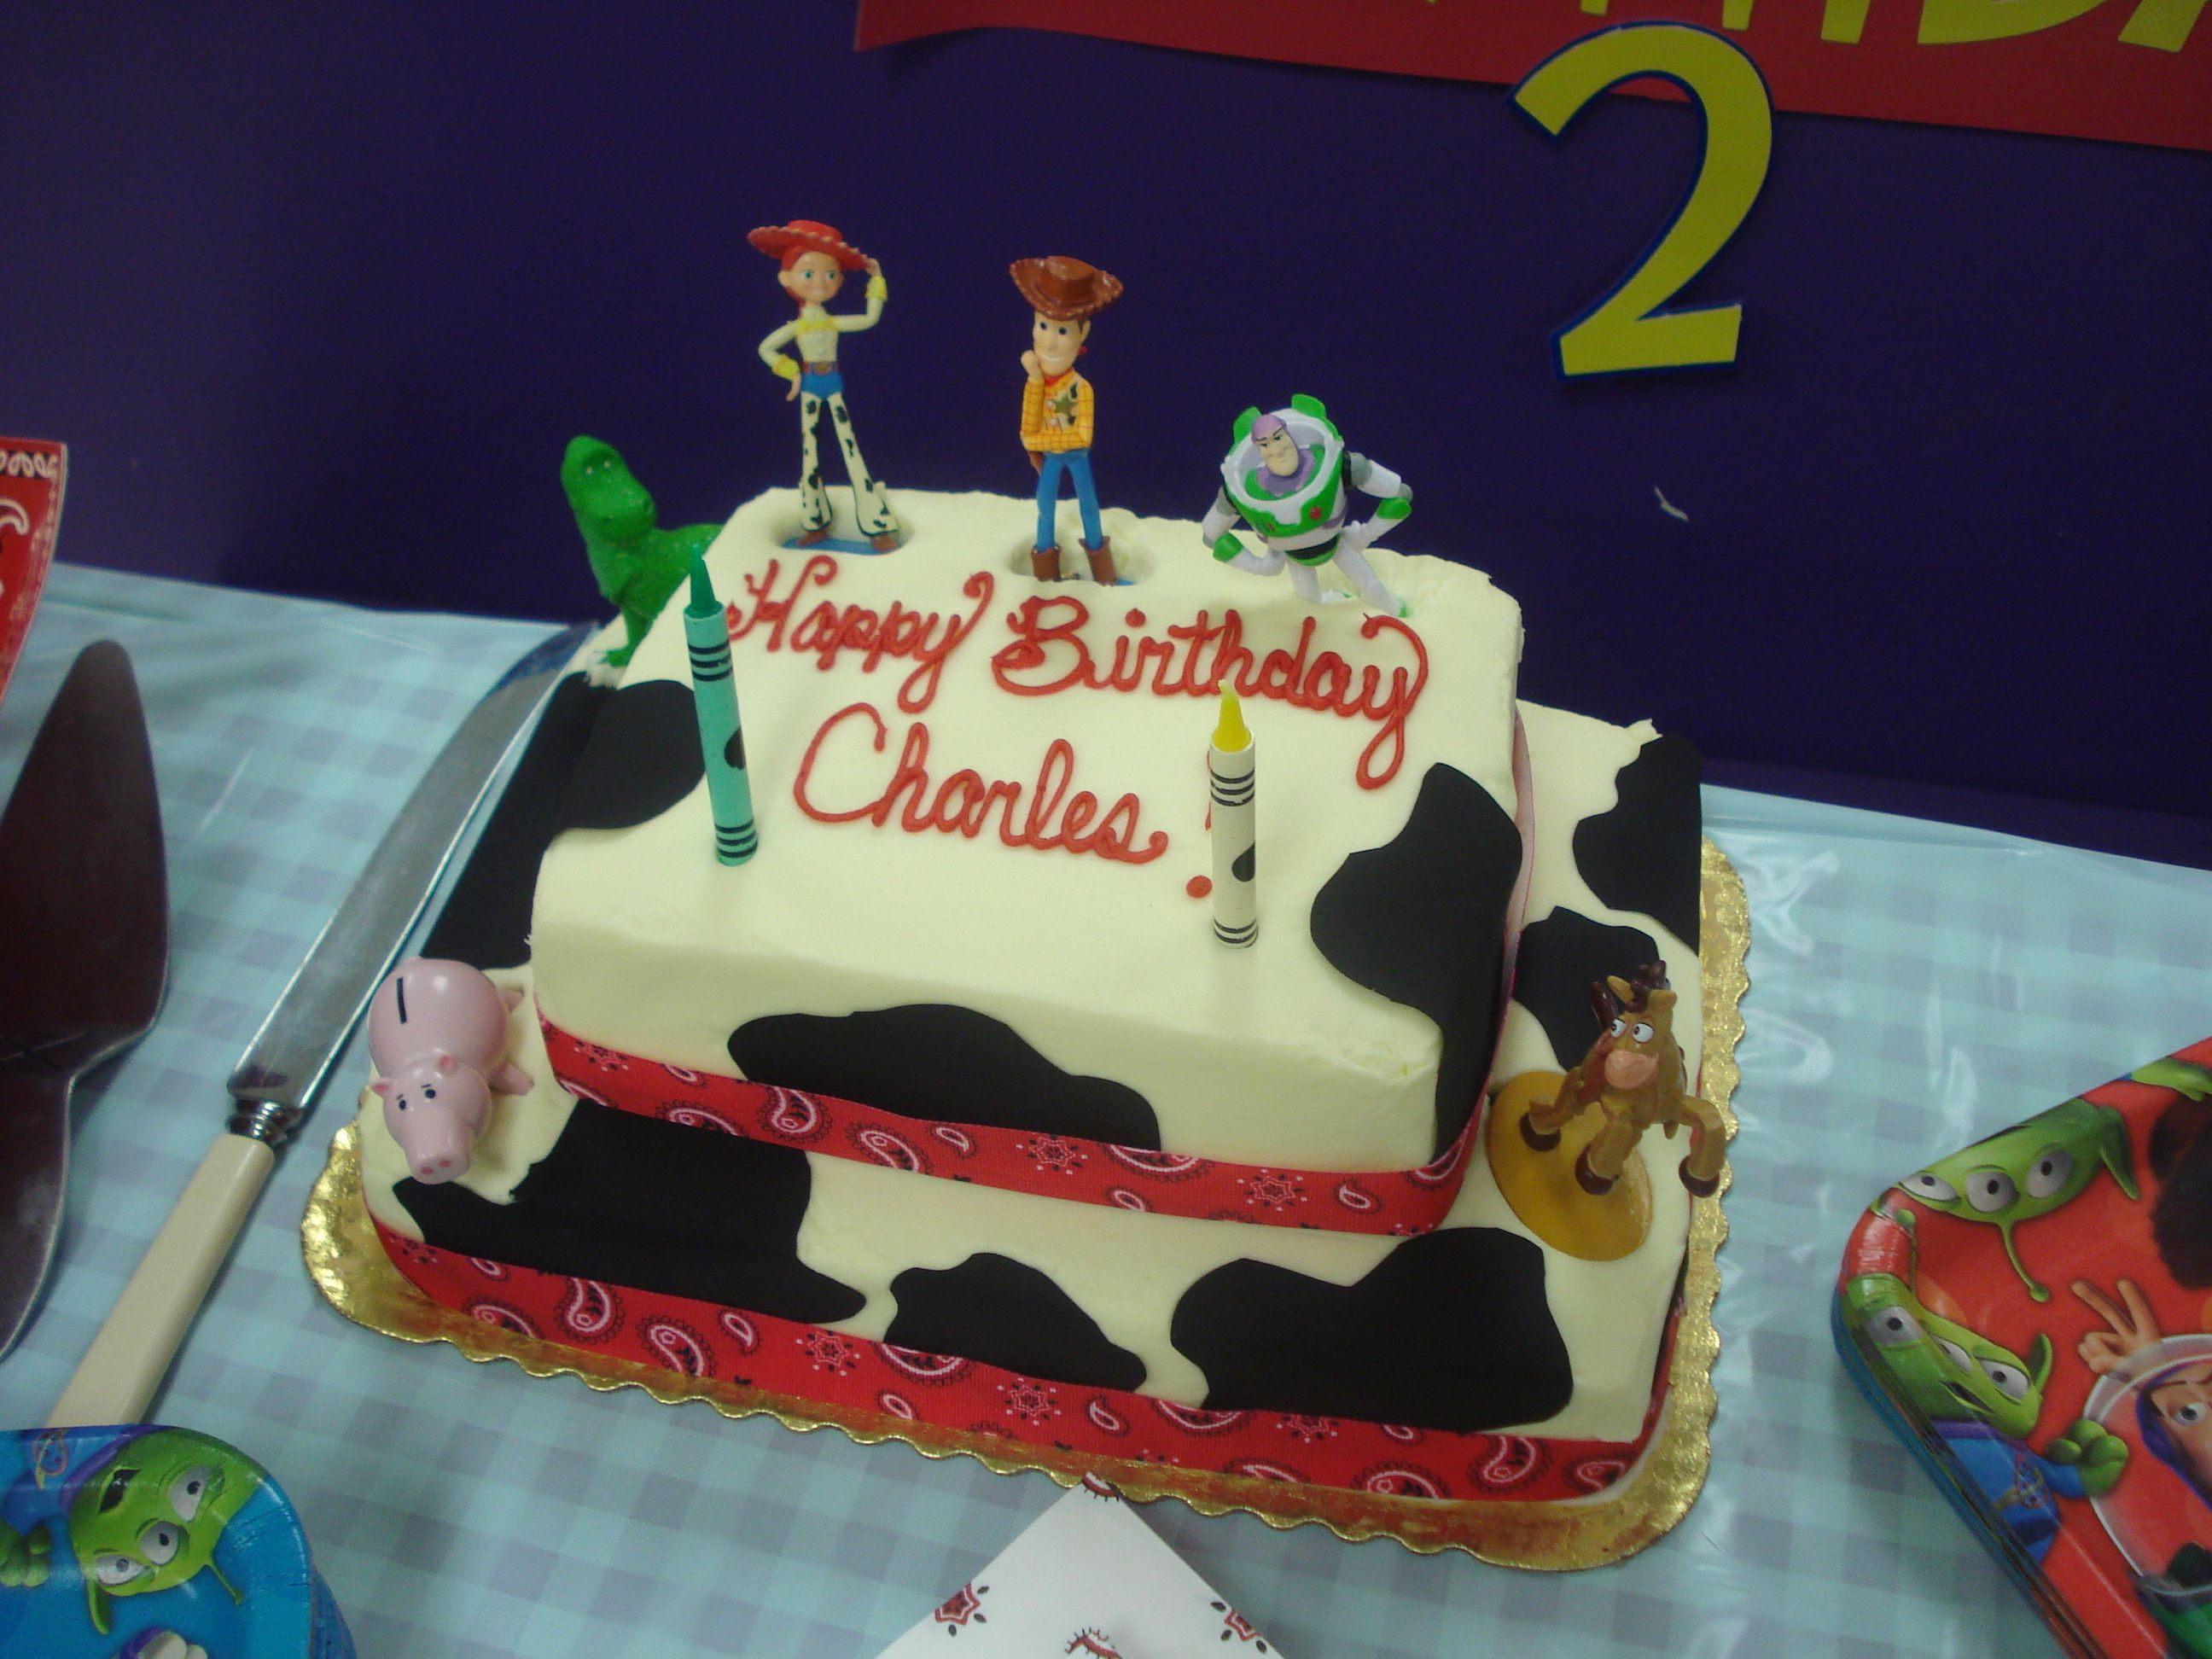 Jessie from toy story bedding - Semi Diy Woody Jessie Inspired Cake A Grocery Store 1 8